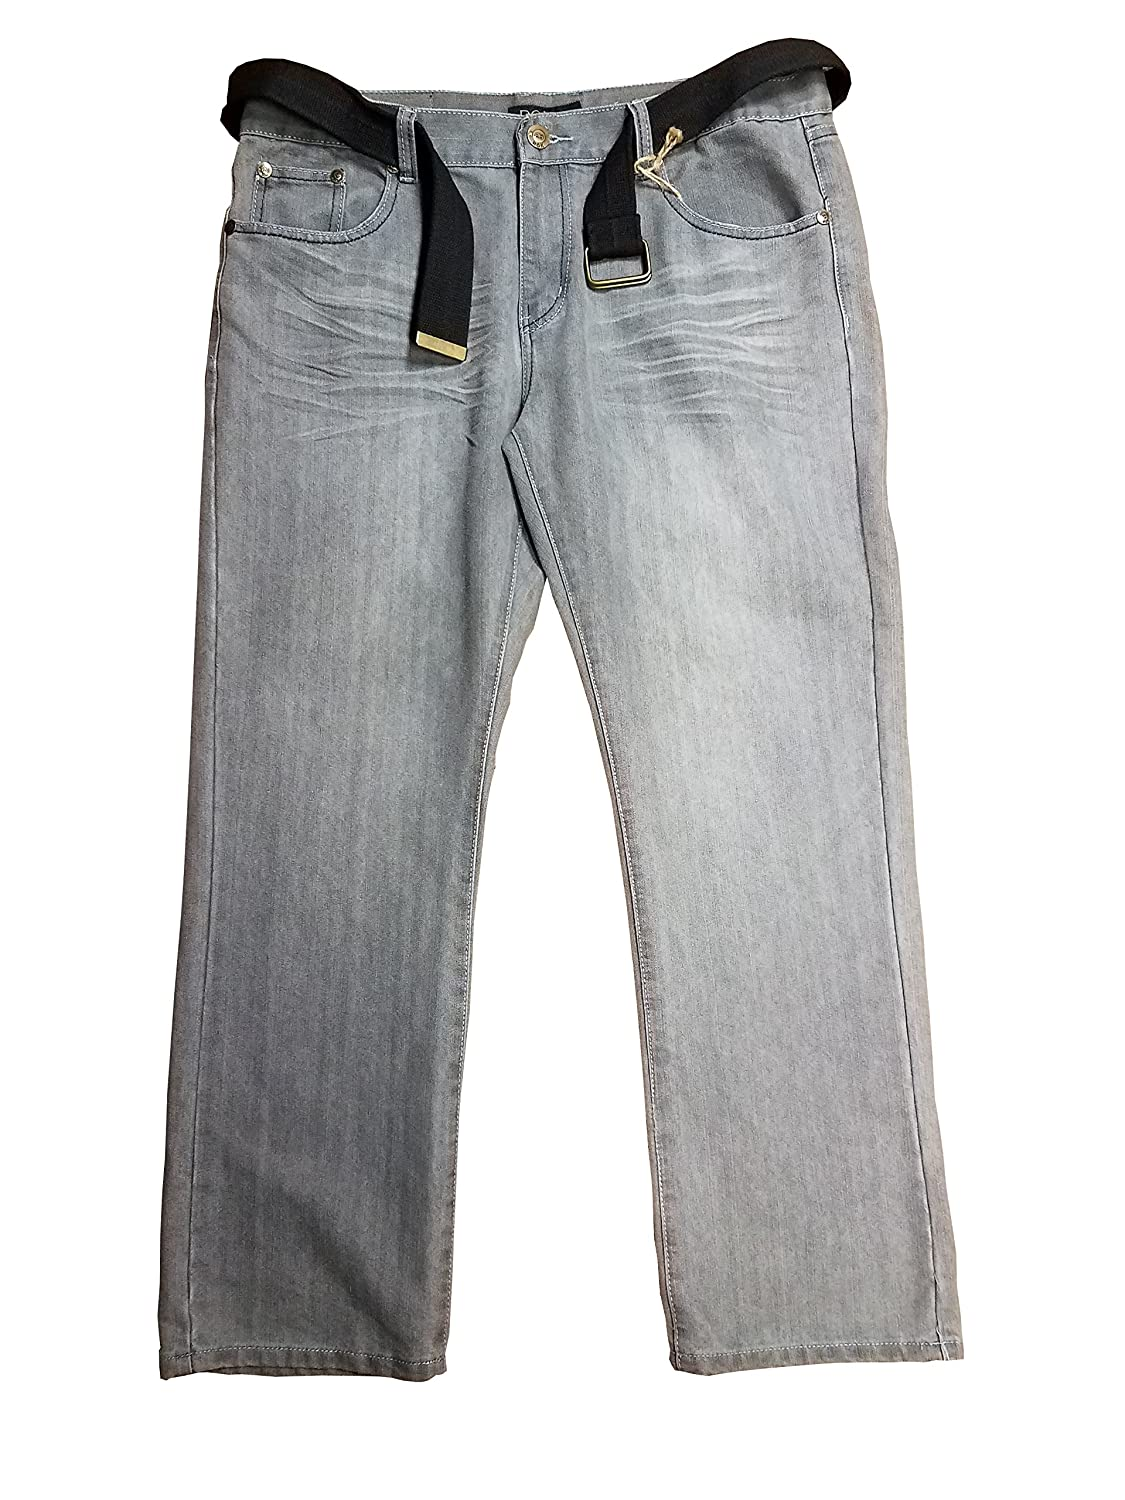 Mens Rok Gray Washed Jeans w// Black Belt